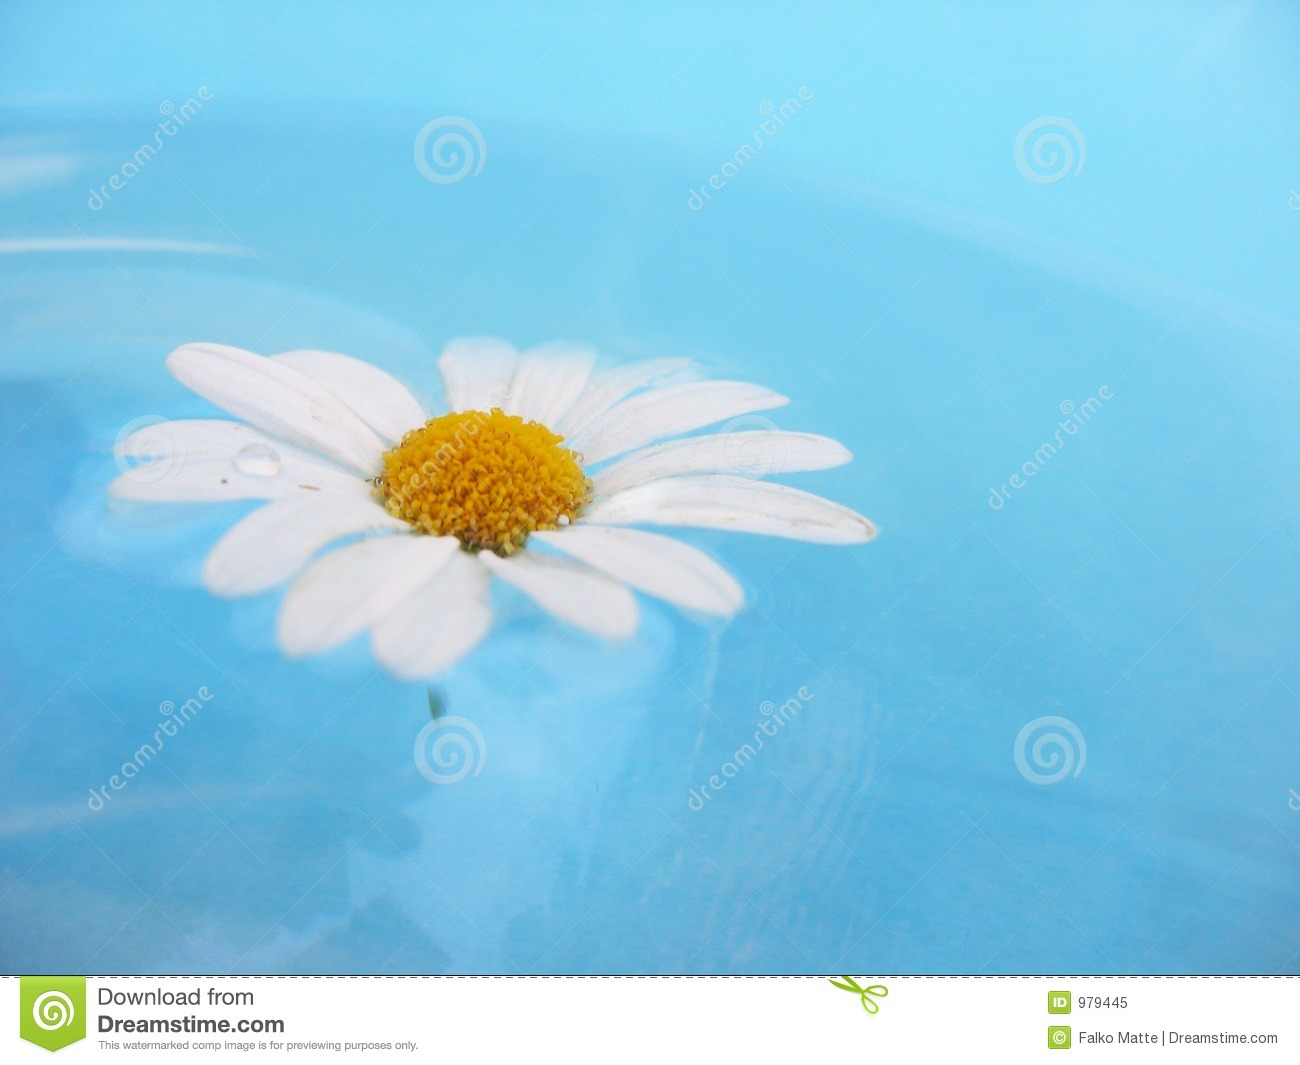 White Daisy on Blue Background